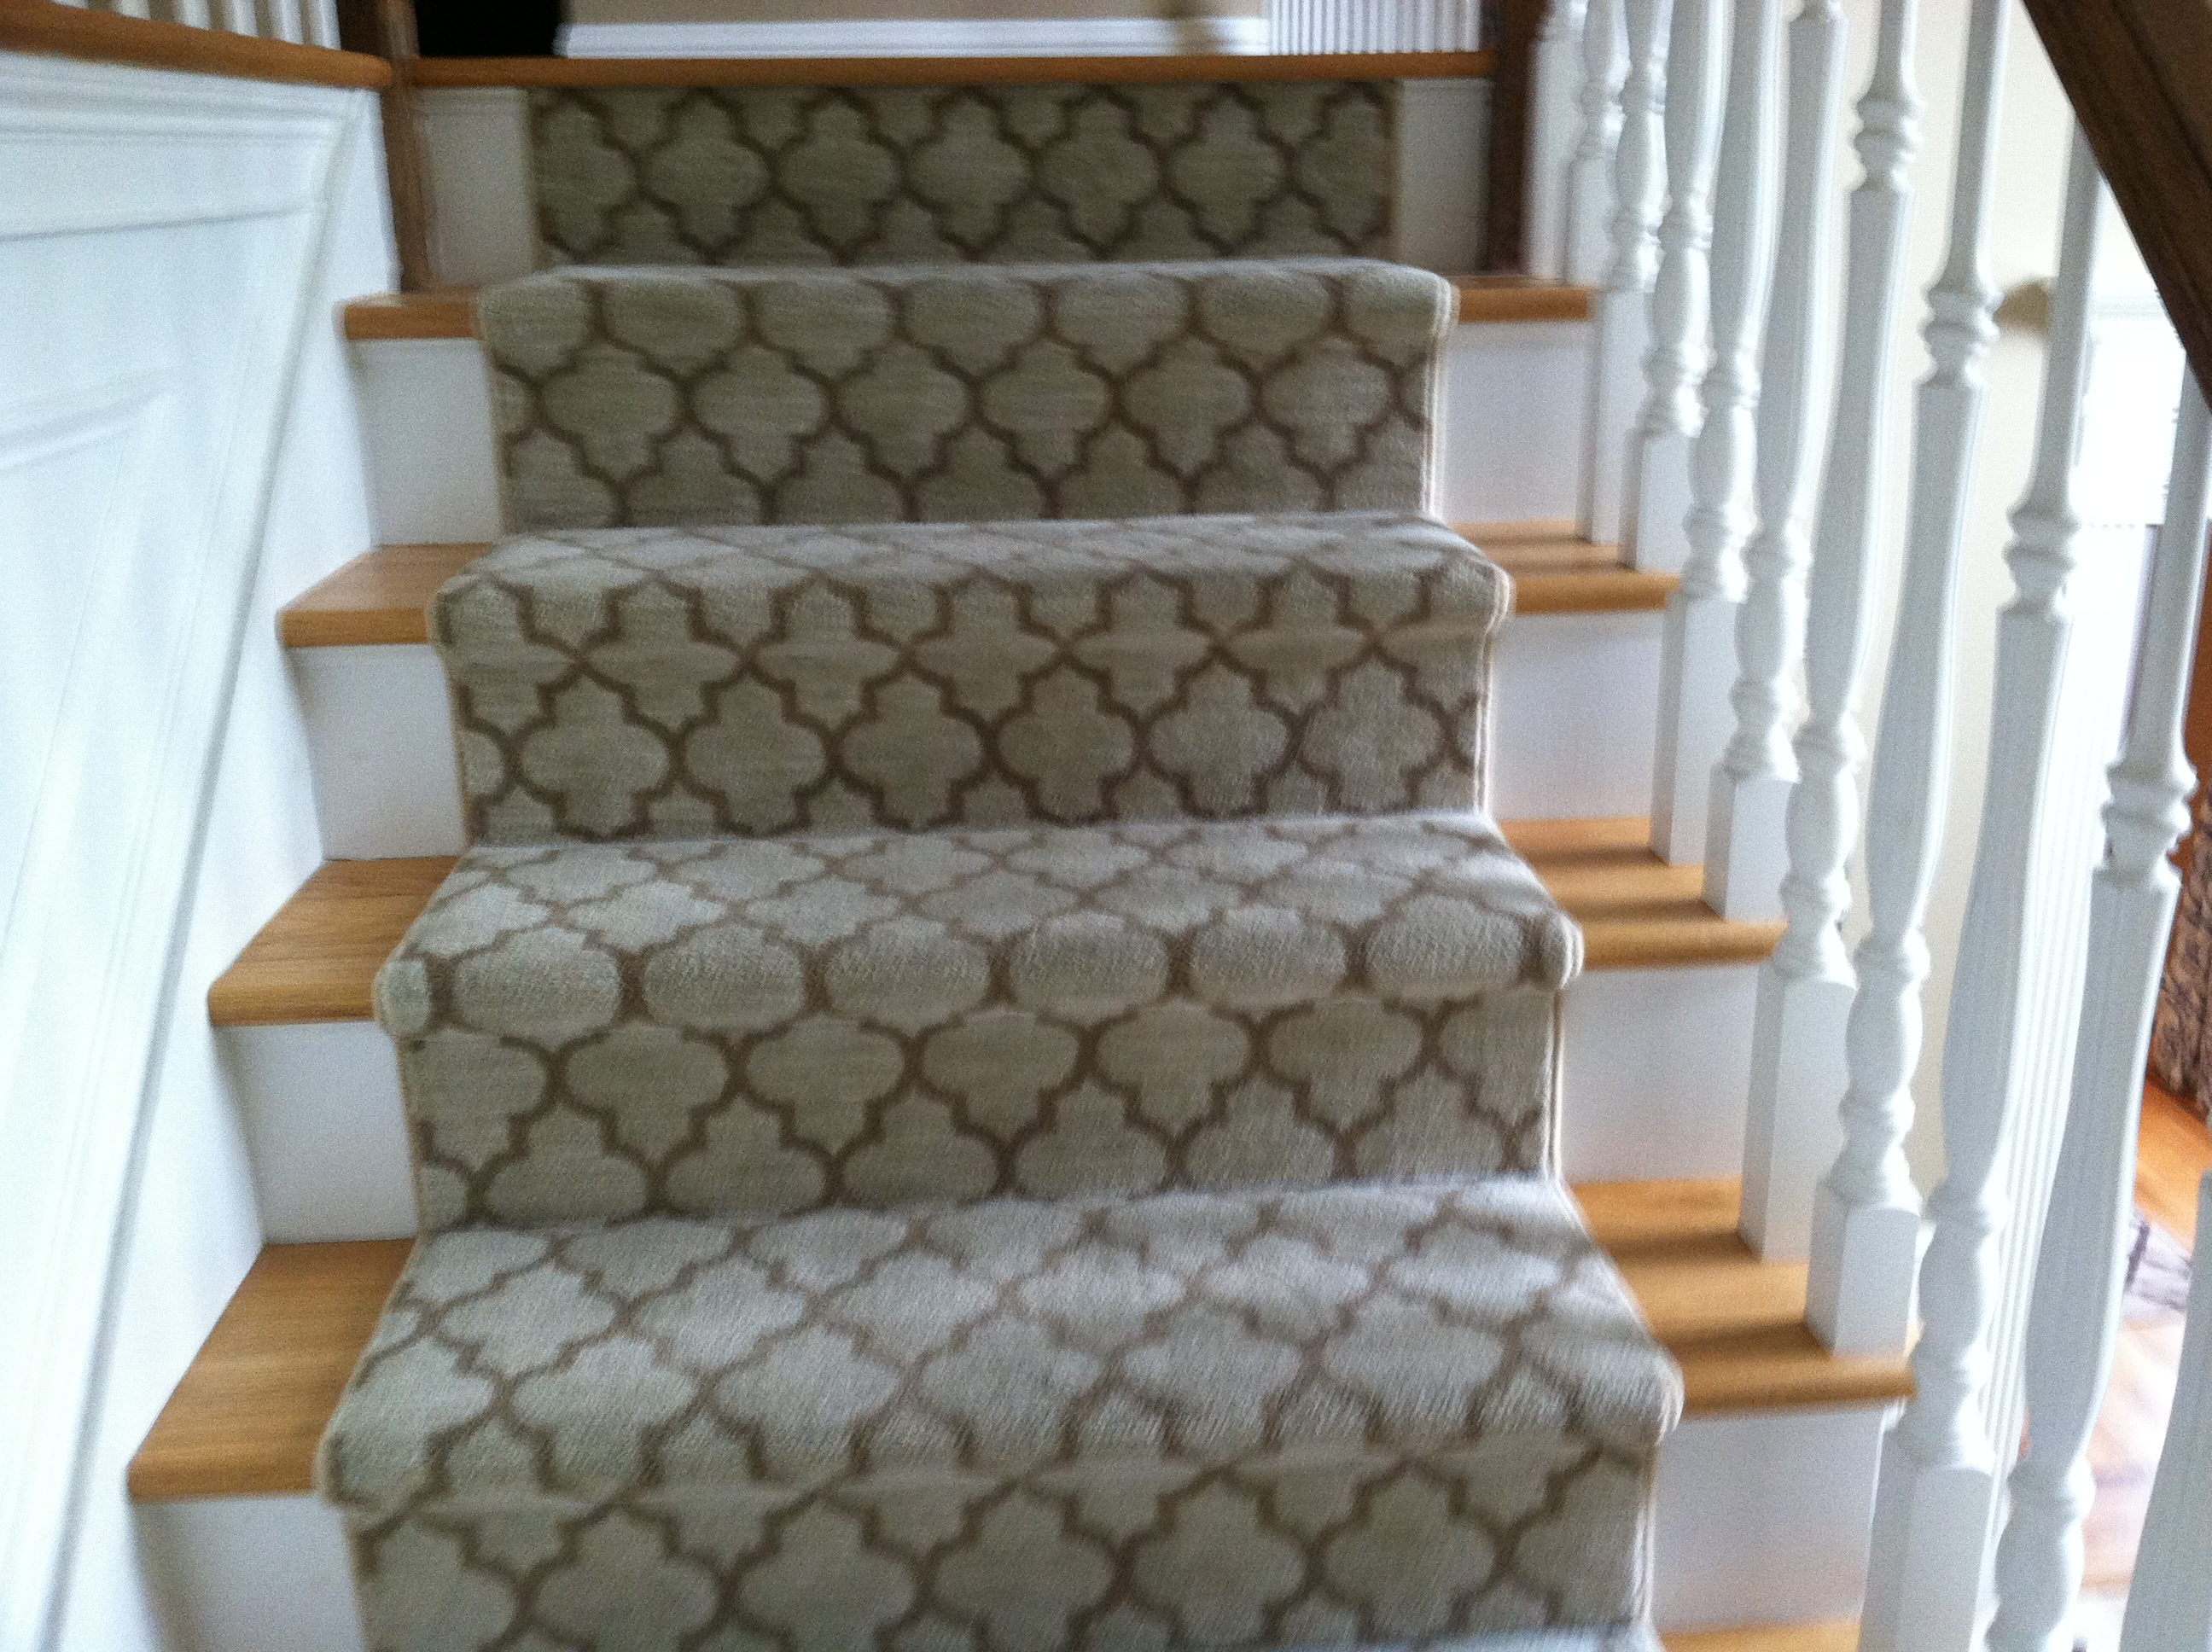 center-hall-staircase-before-removing-existing-runner-dustless-sanding-and-refinishing-process